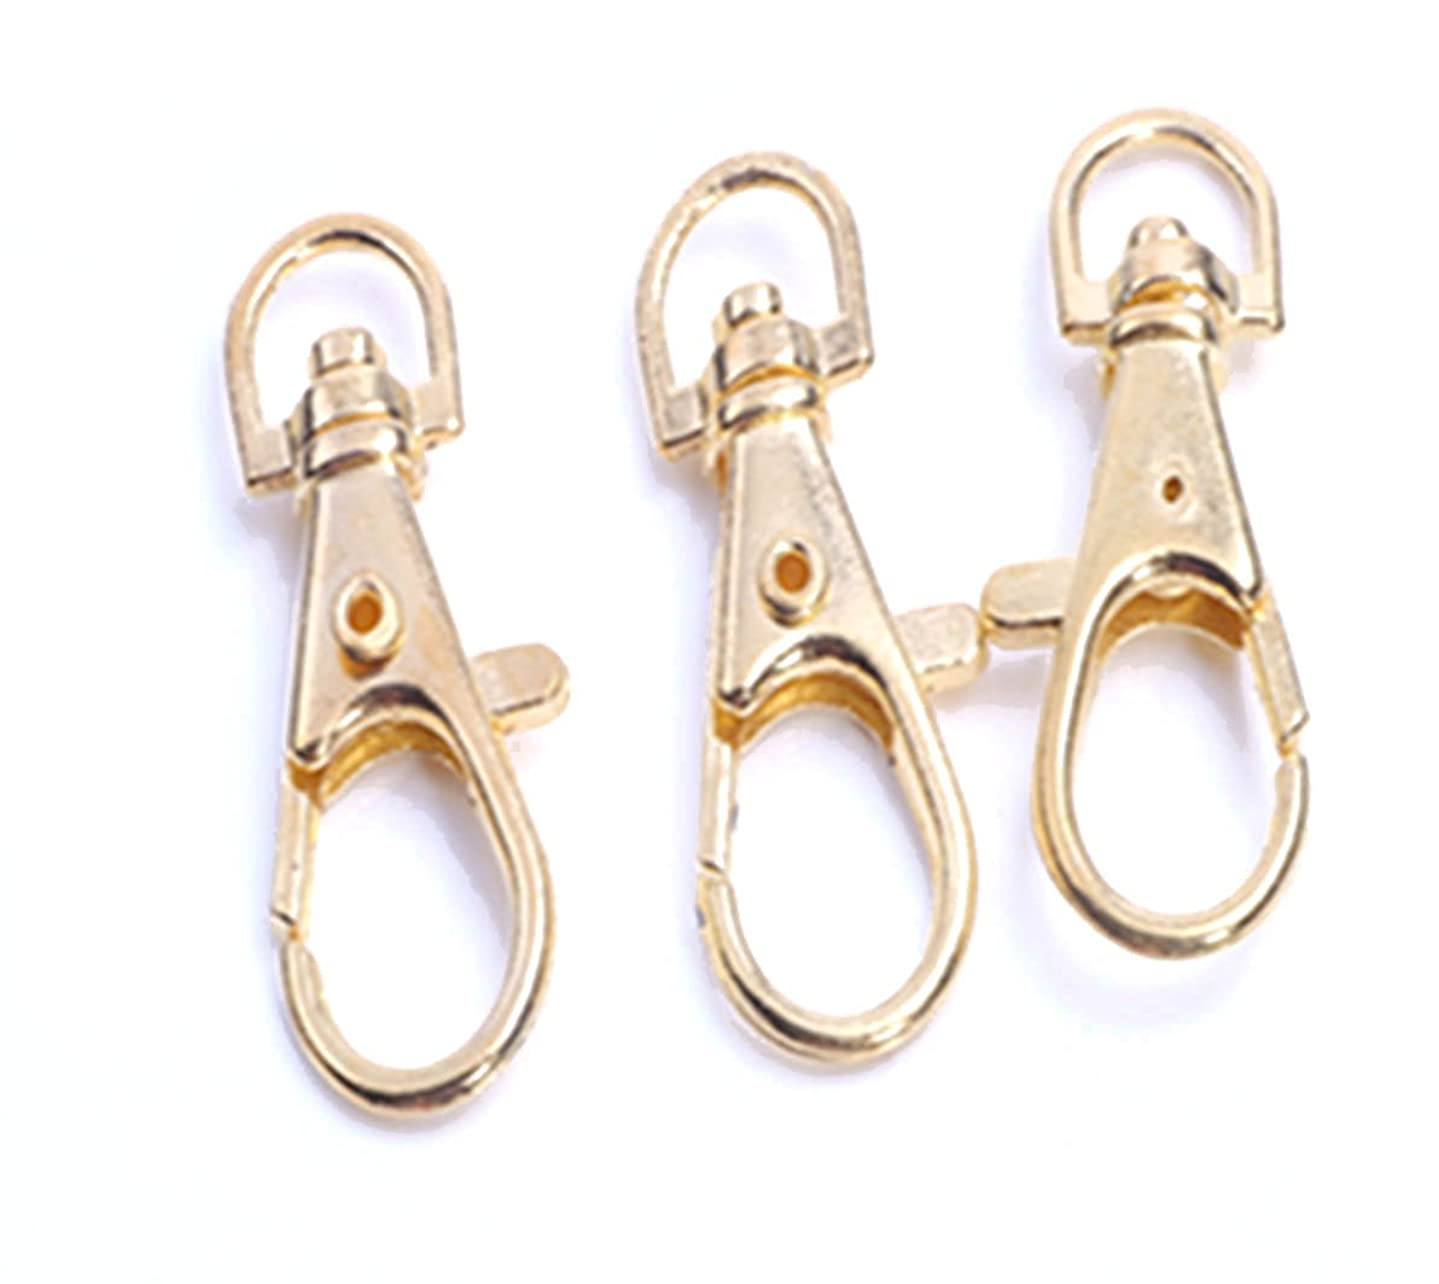 YOYOSTORE 50 Pc Gold Pattern Carabiner Lobster Clasps Key Chain for Keyring Hook Finding DIY